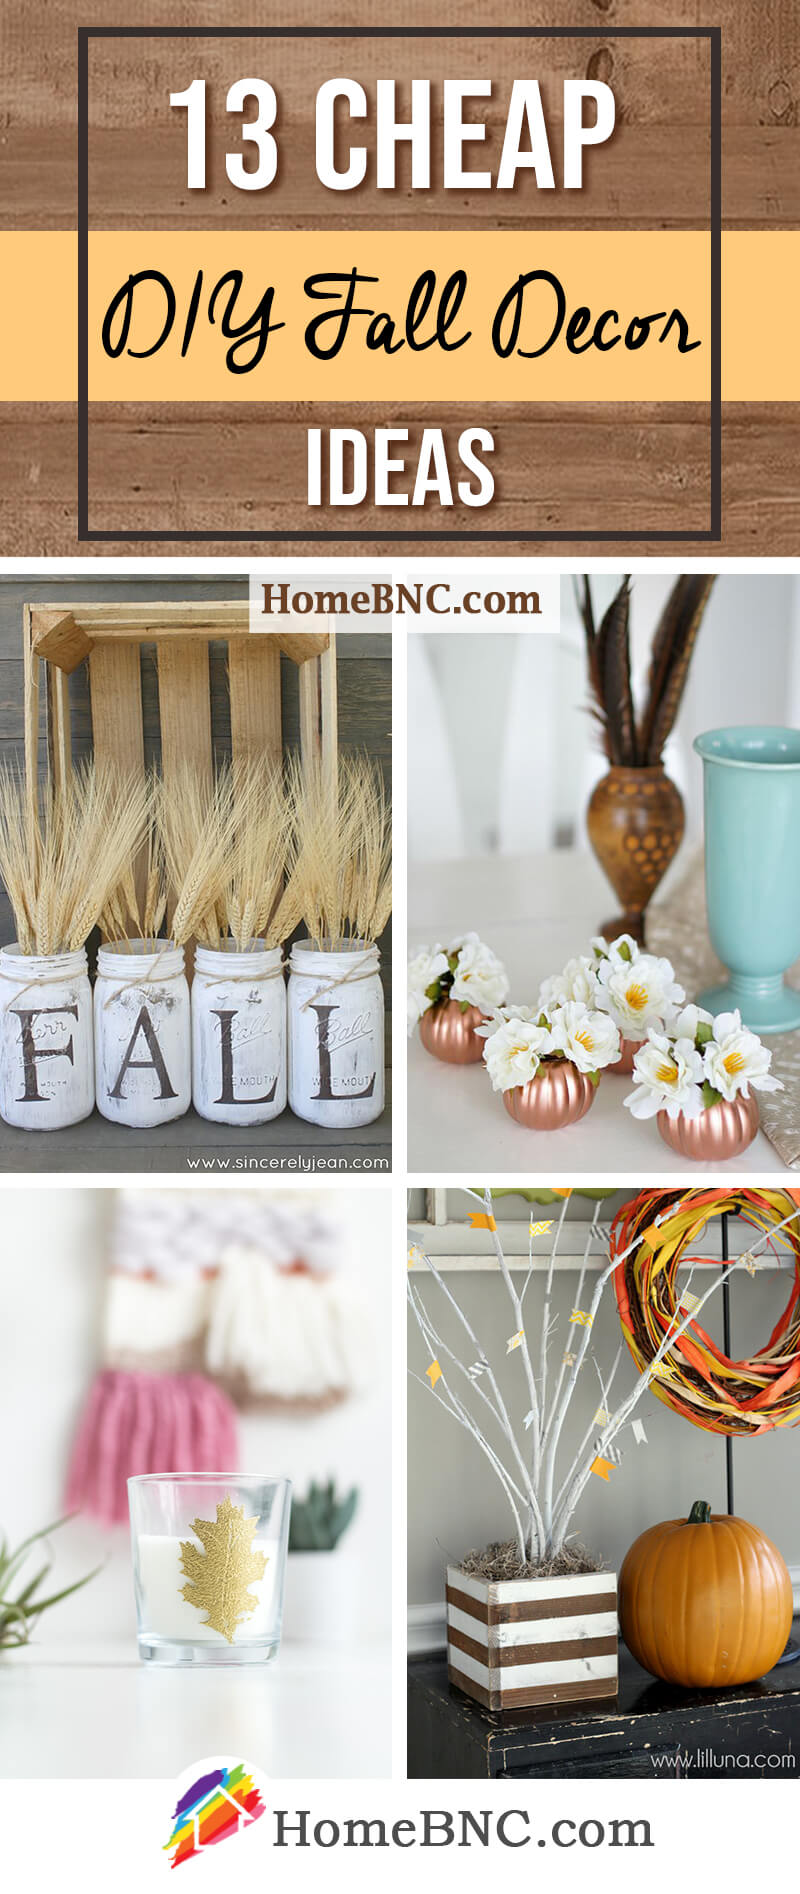 13 Best Cheap Diy Fall Decor Ideas And Designs For 2021